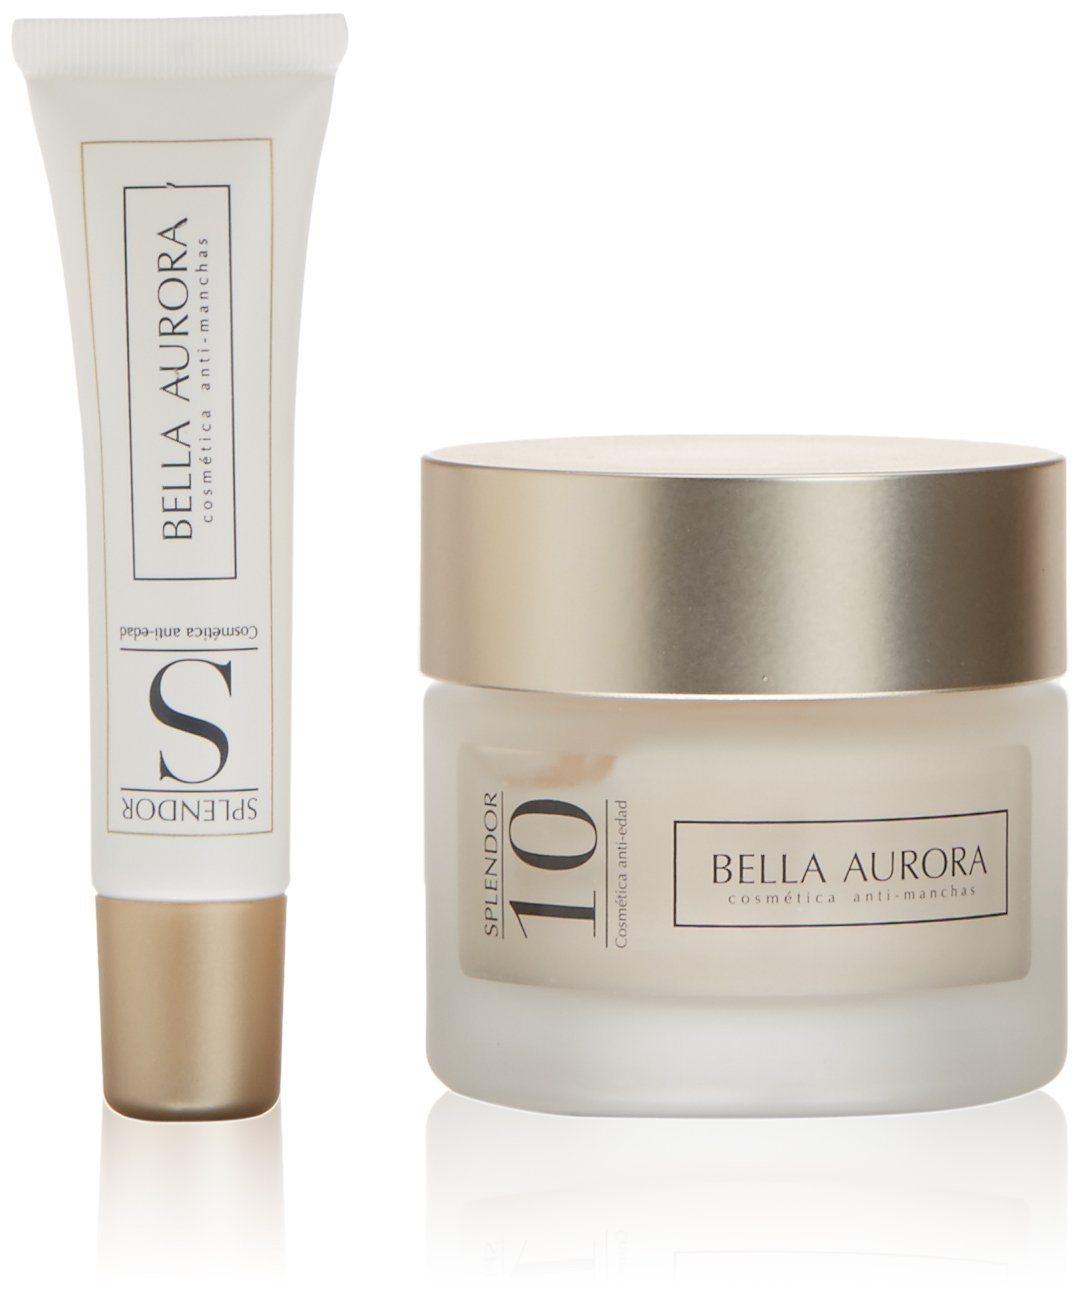 Amazon.com : BELLA AURORA SPLENDOR 10 SPF15 CREAM 50ML + ...